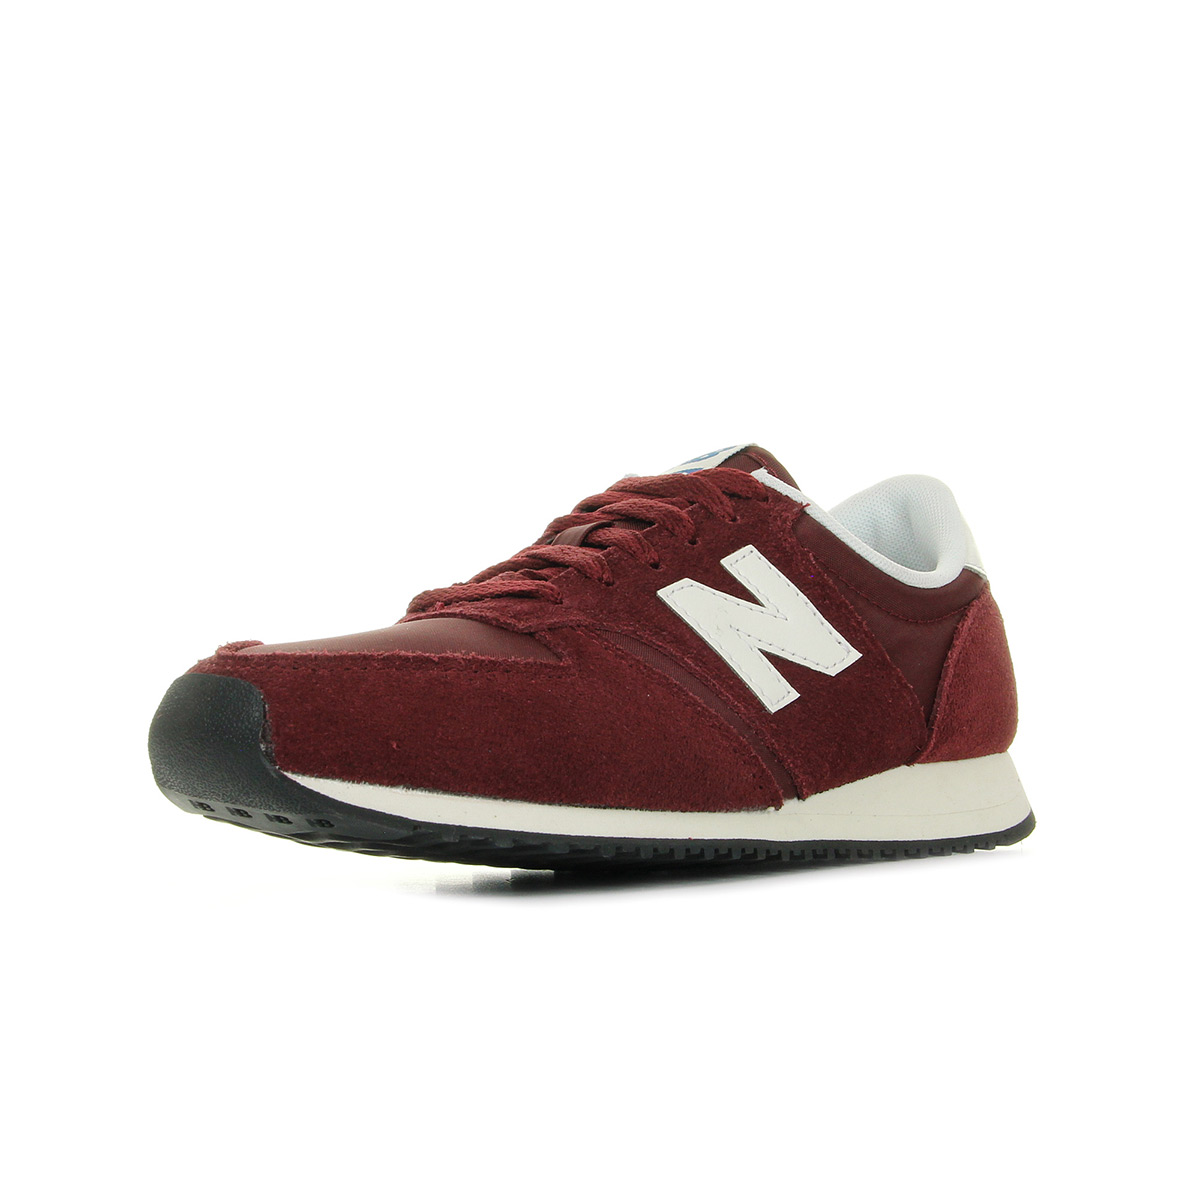 Chaussures Baskets New Balance unisexe U420 RDW taille Bordeaux Cuir Lacets